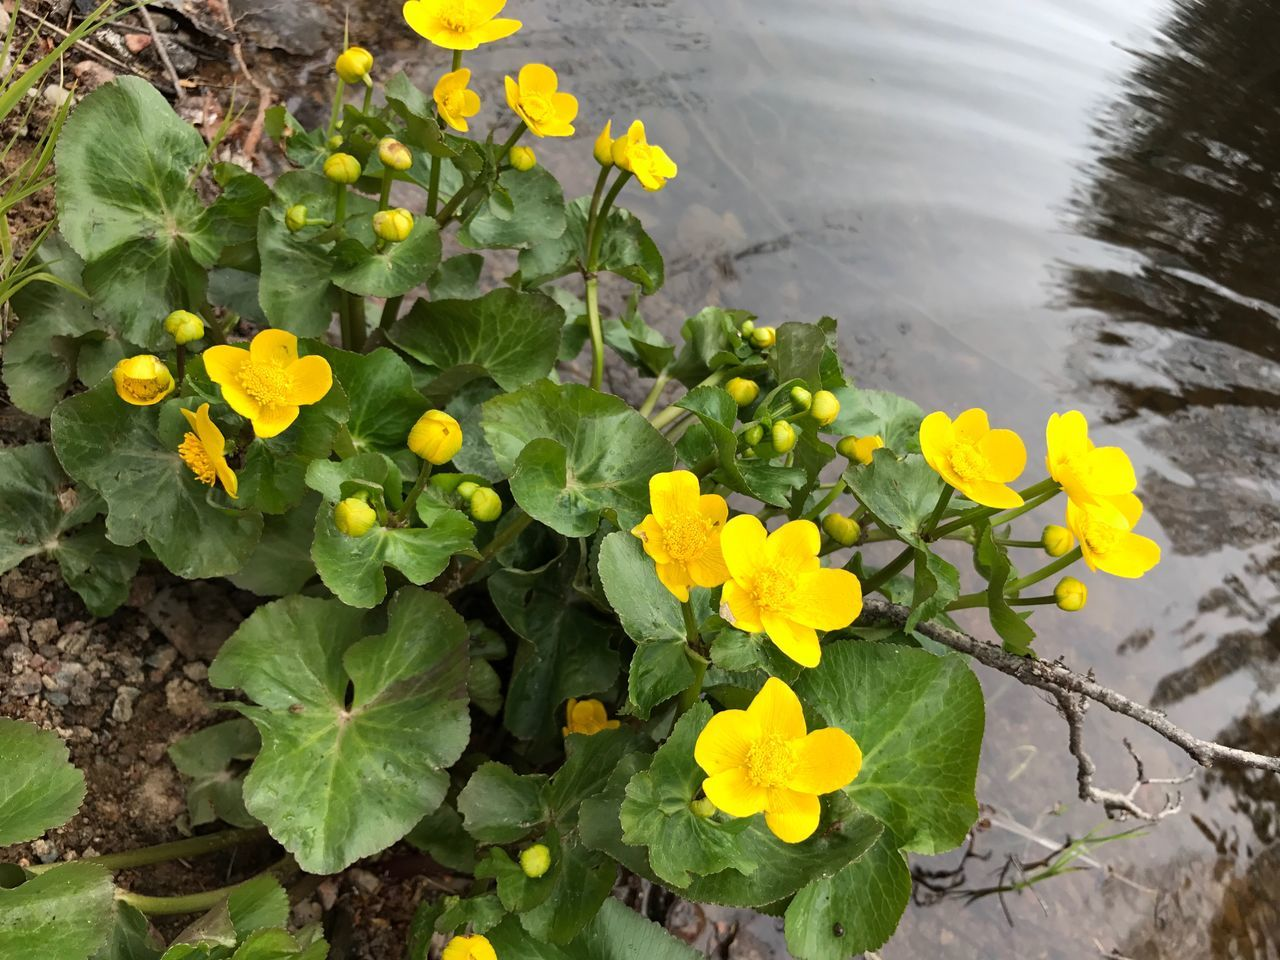 Flower Growth Freshness Petal Fragility Plant Yellow Nature Beauty In Nature Flower Head Outdoors High Angle View Day Leaf Green Color No People Blooming Close-up Water